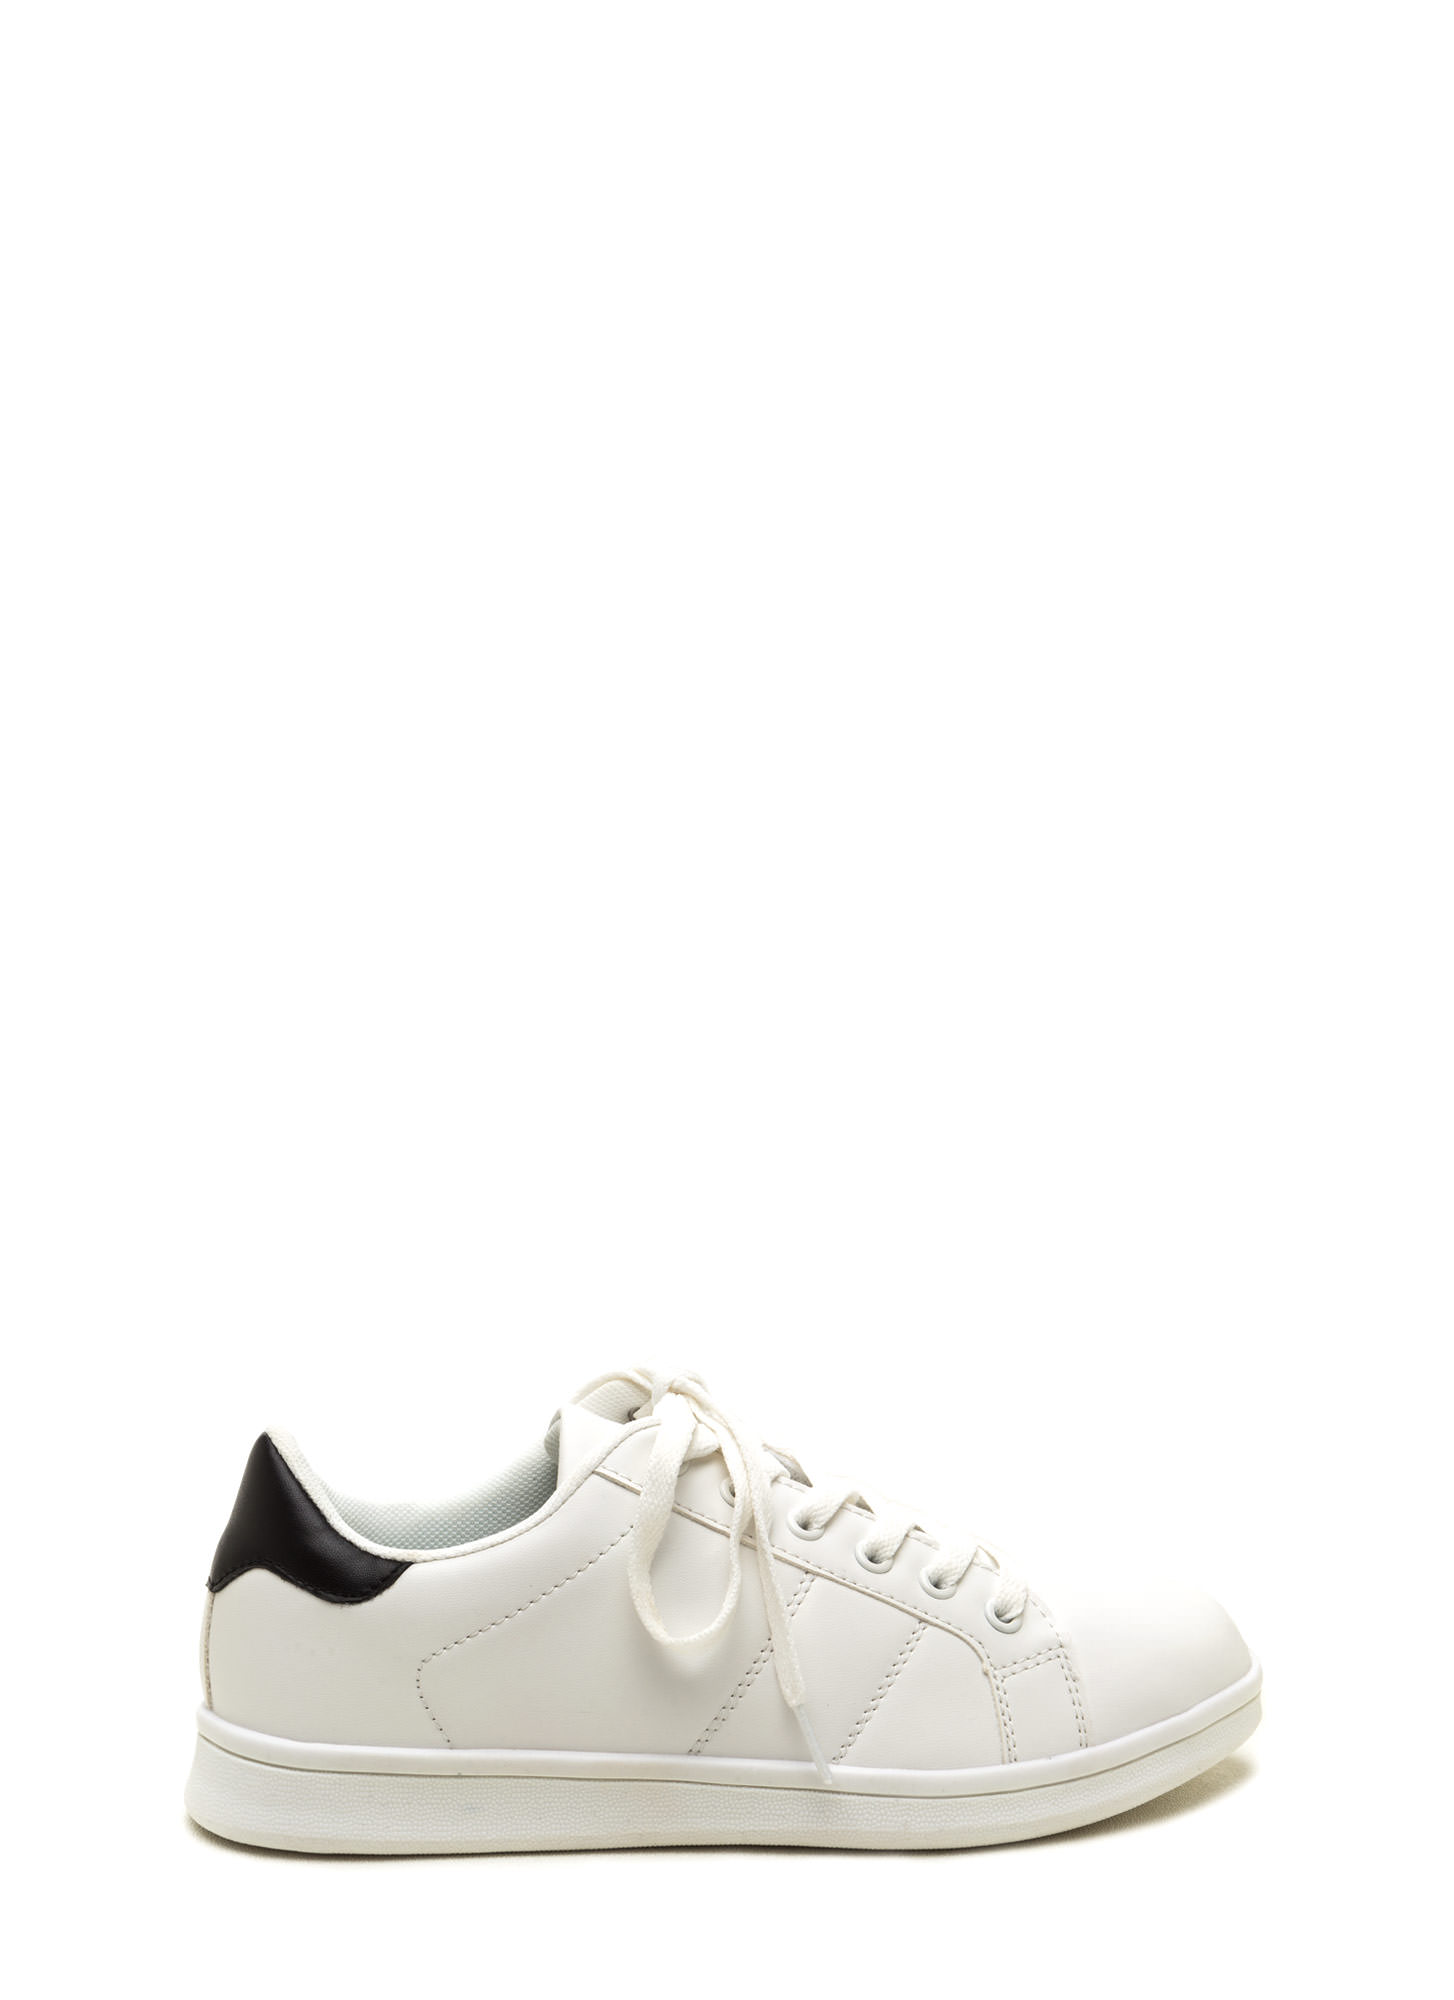 Courtside Faux Leather Contrast Sneakers WHITEBLACK